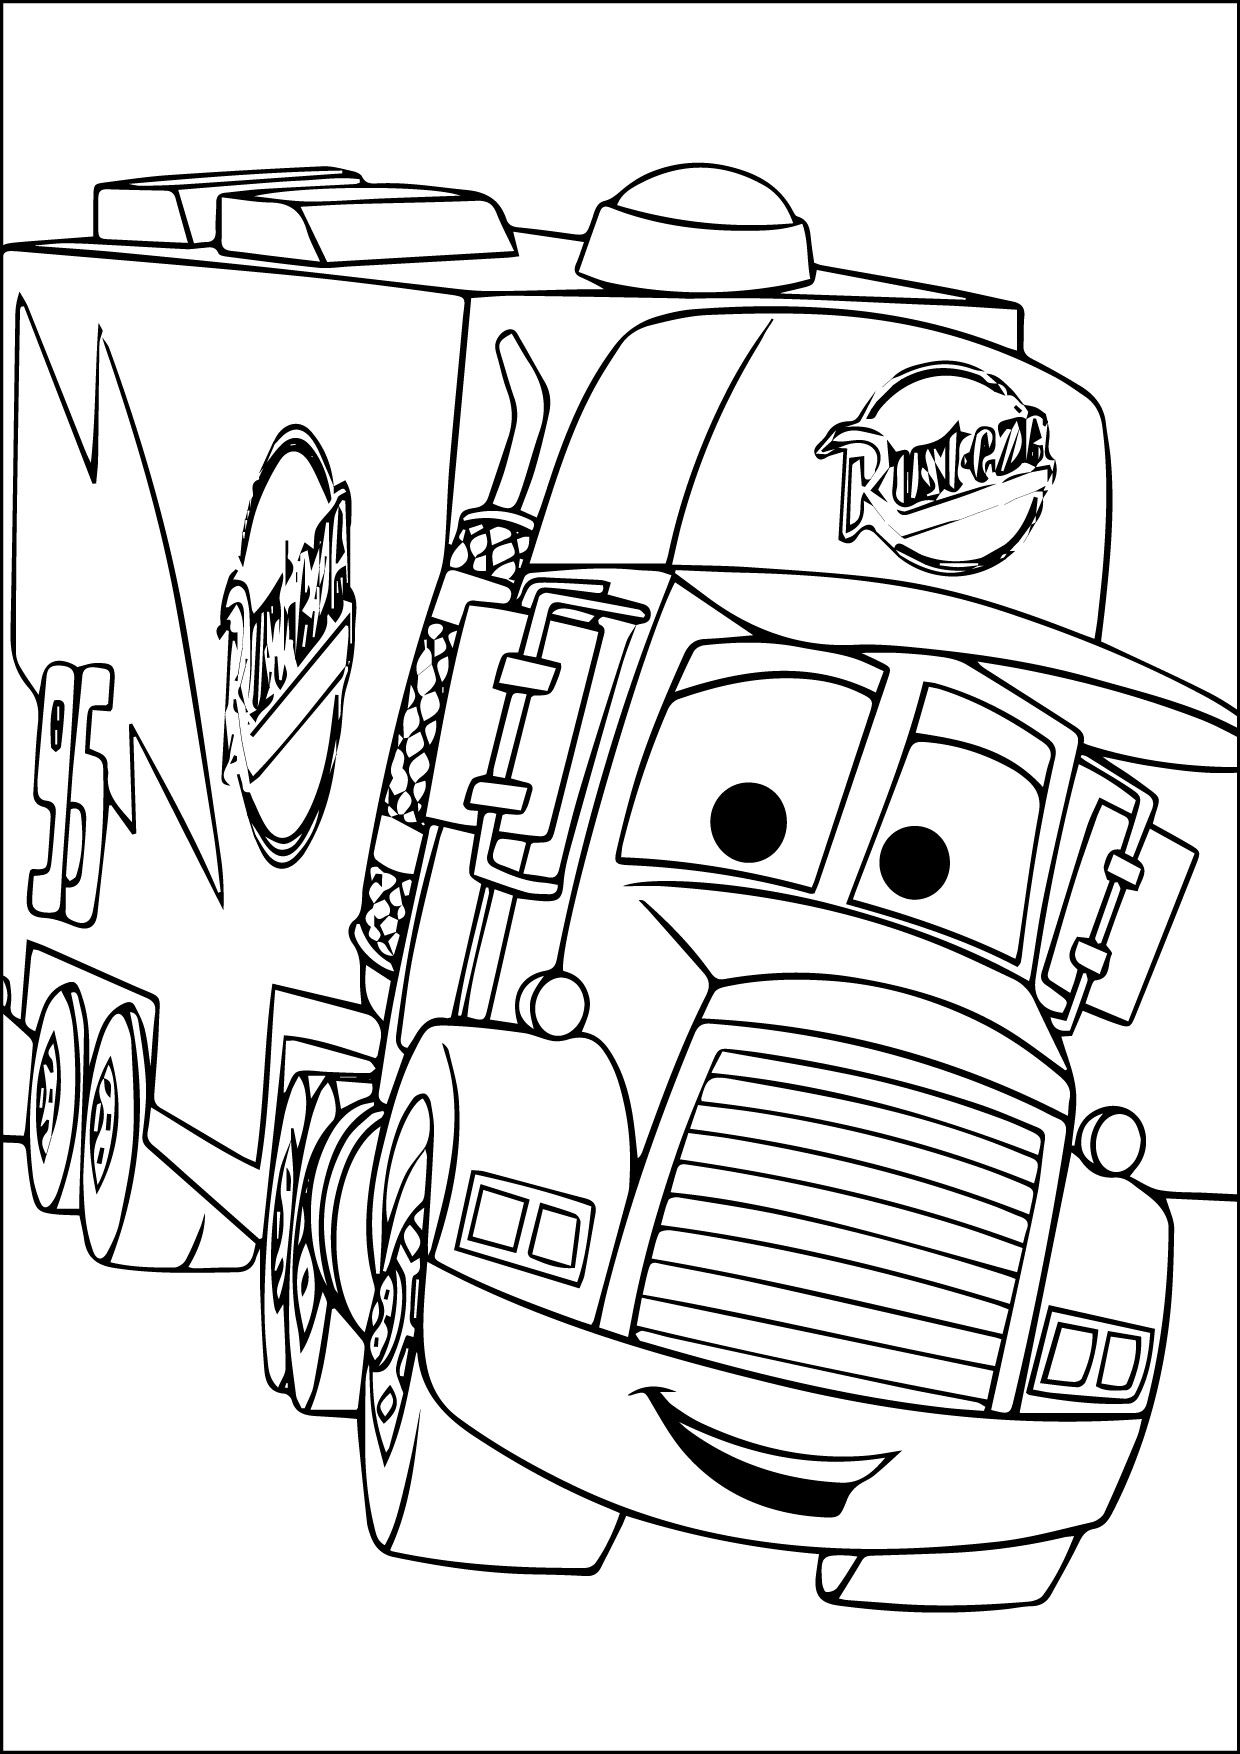 lightning mcqueen colouring pictures to print 27 best colorclip art carstrucksetc images on print to mcqueen lightning pictures colouring